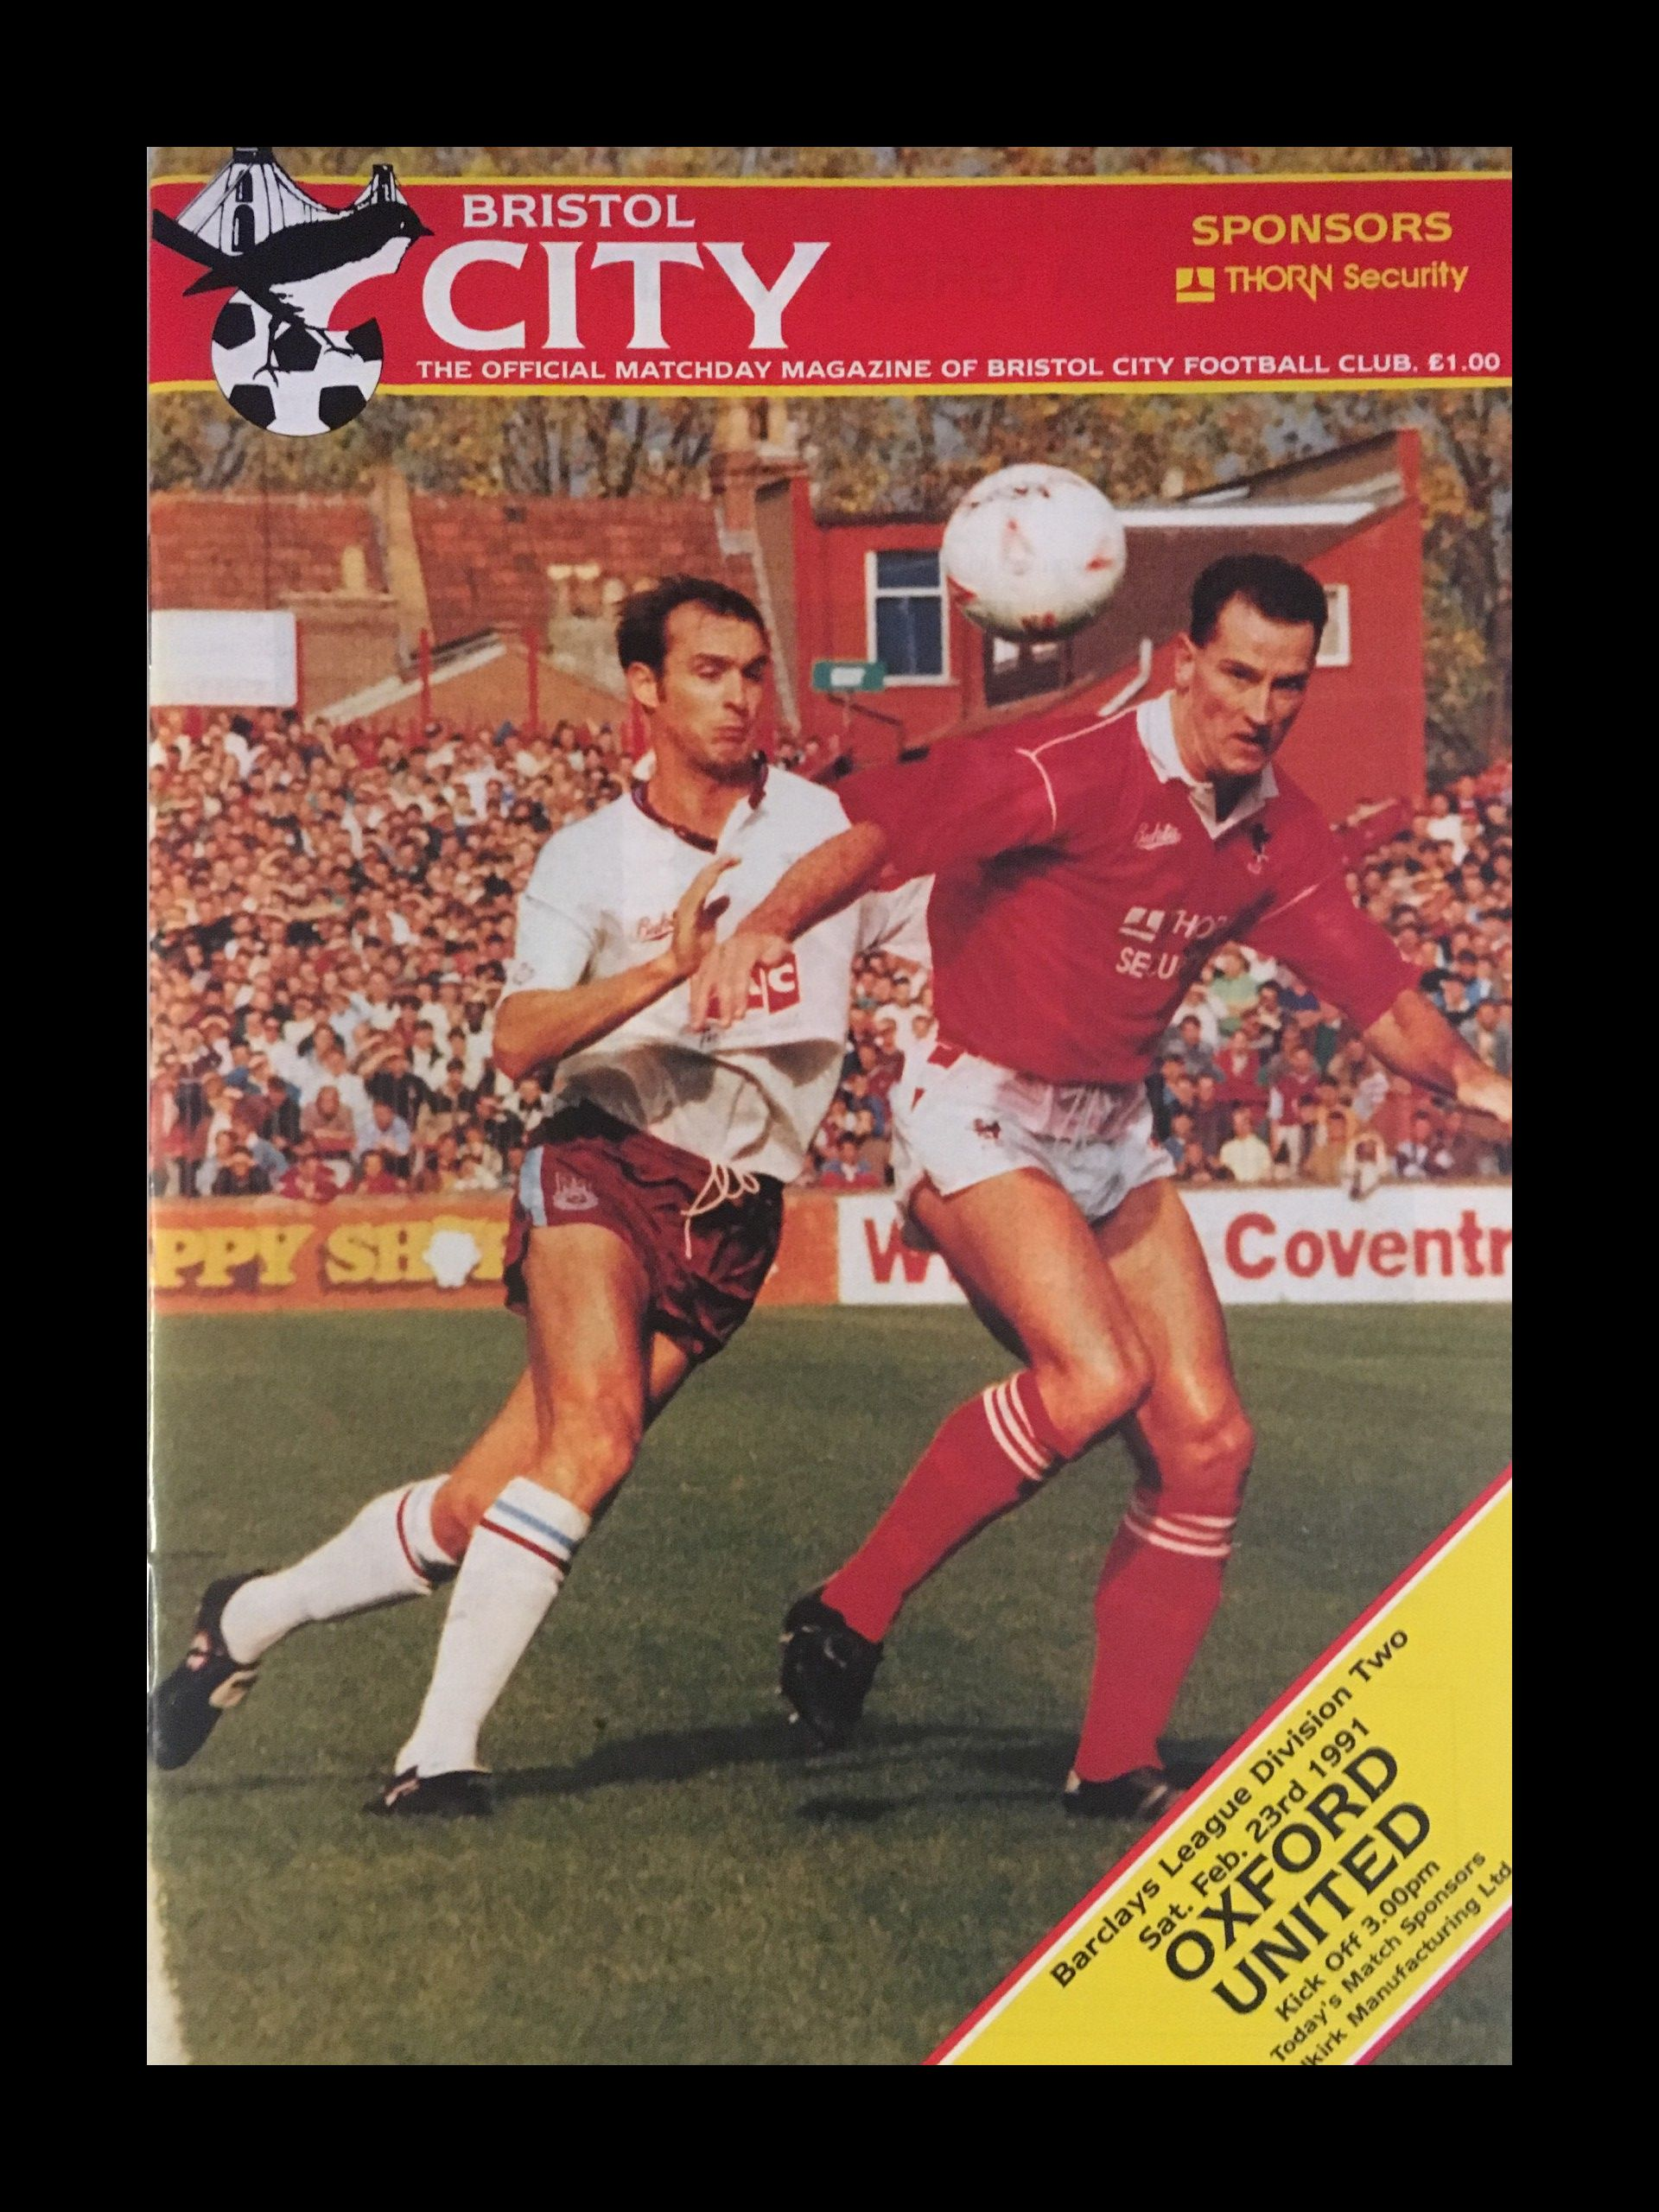 Bristol City v Oxford United 23-02-1991 Programme